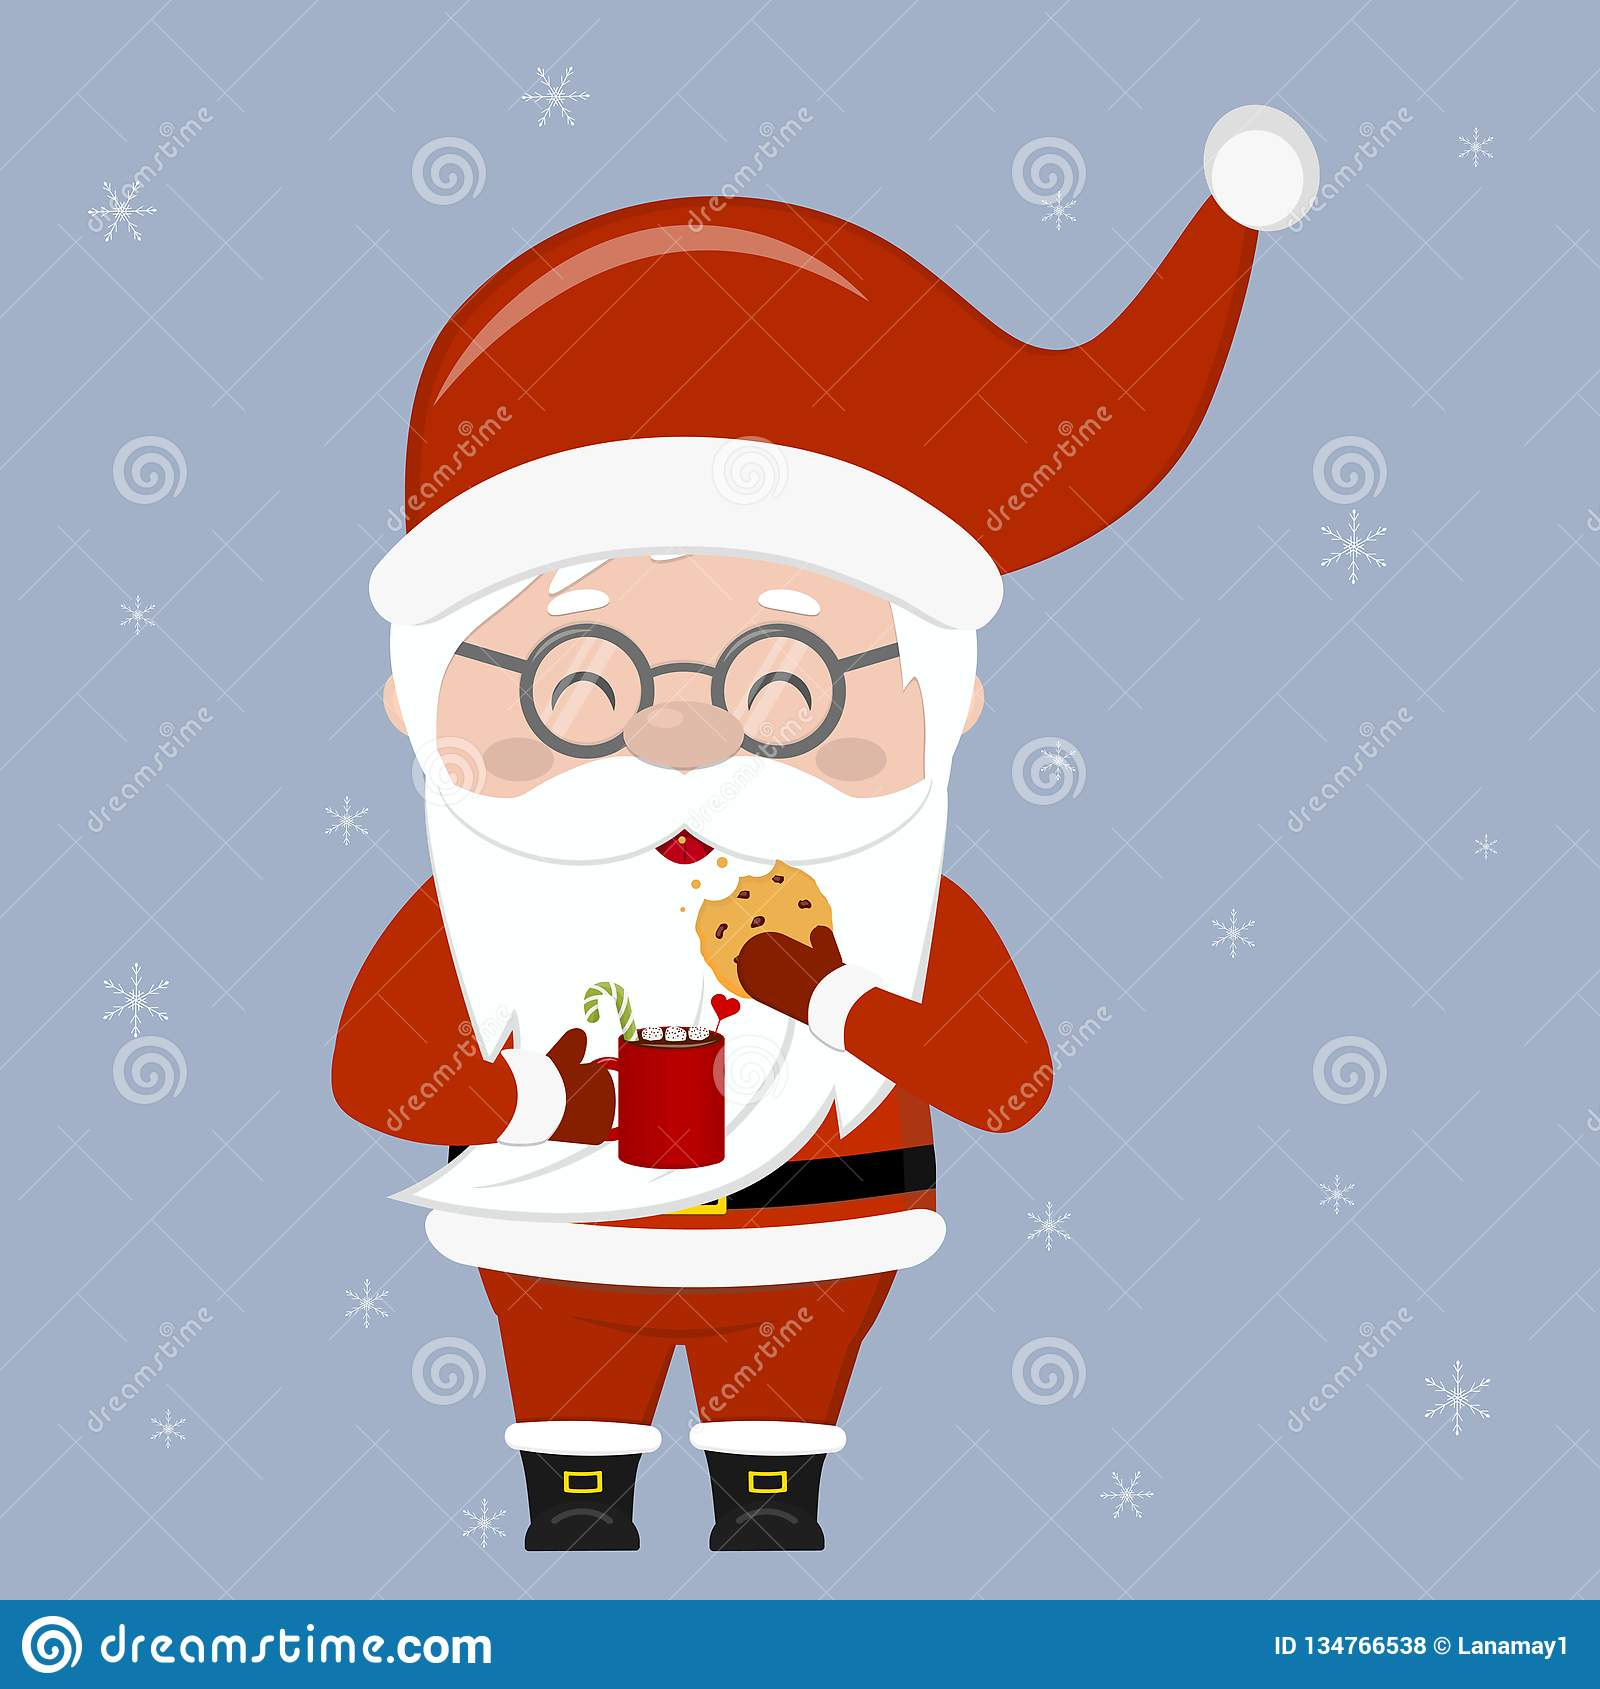 Merry Christmas and Happy New Year greeting card. A cute Santa Claus wearing glasses holds a cup of cocoa and oatmeal cookies with